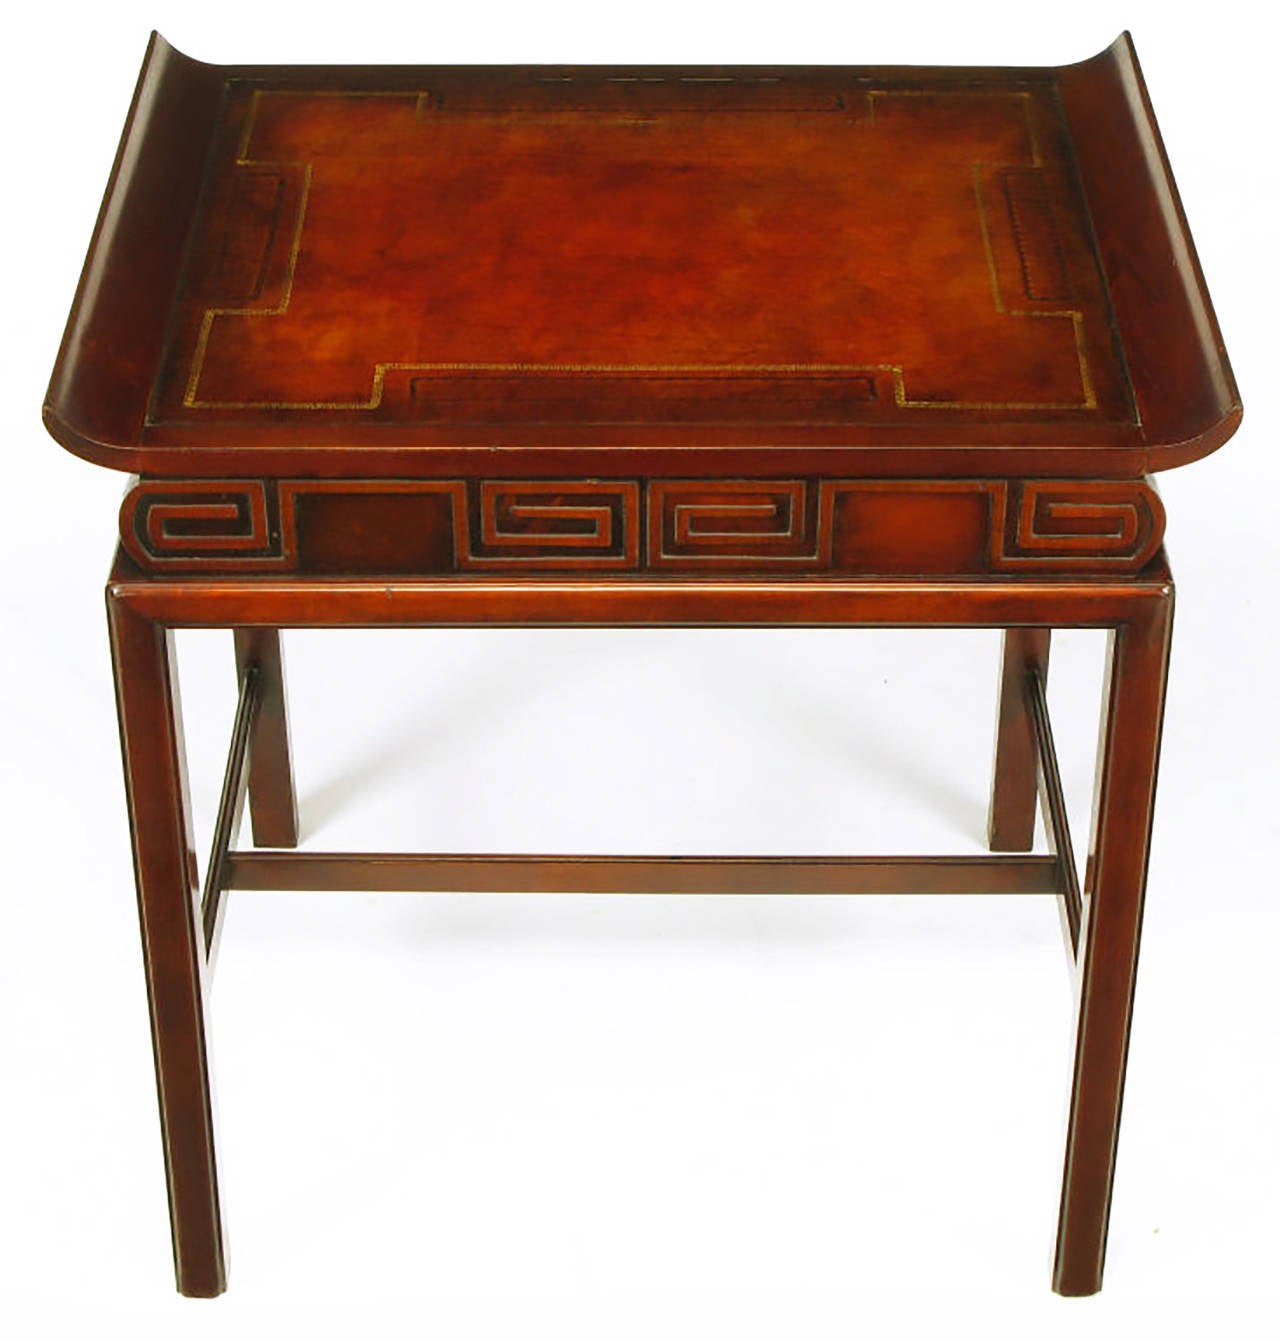 Pair of Curved Mahogany and Leather Top End Tables with Greek Key Reliefs 3